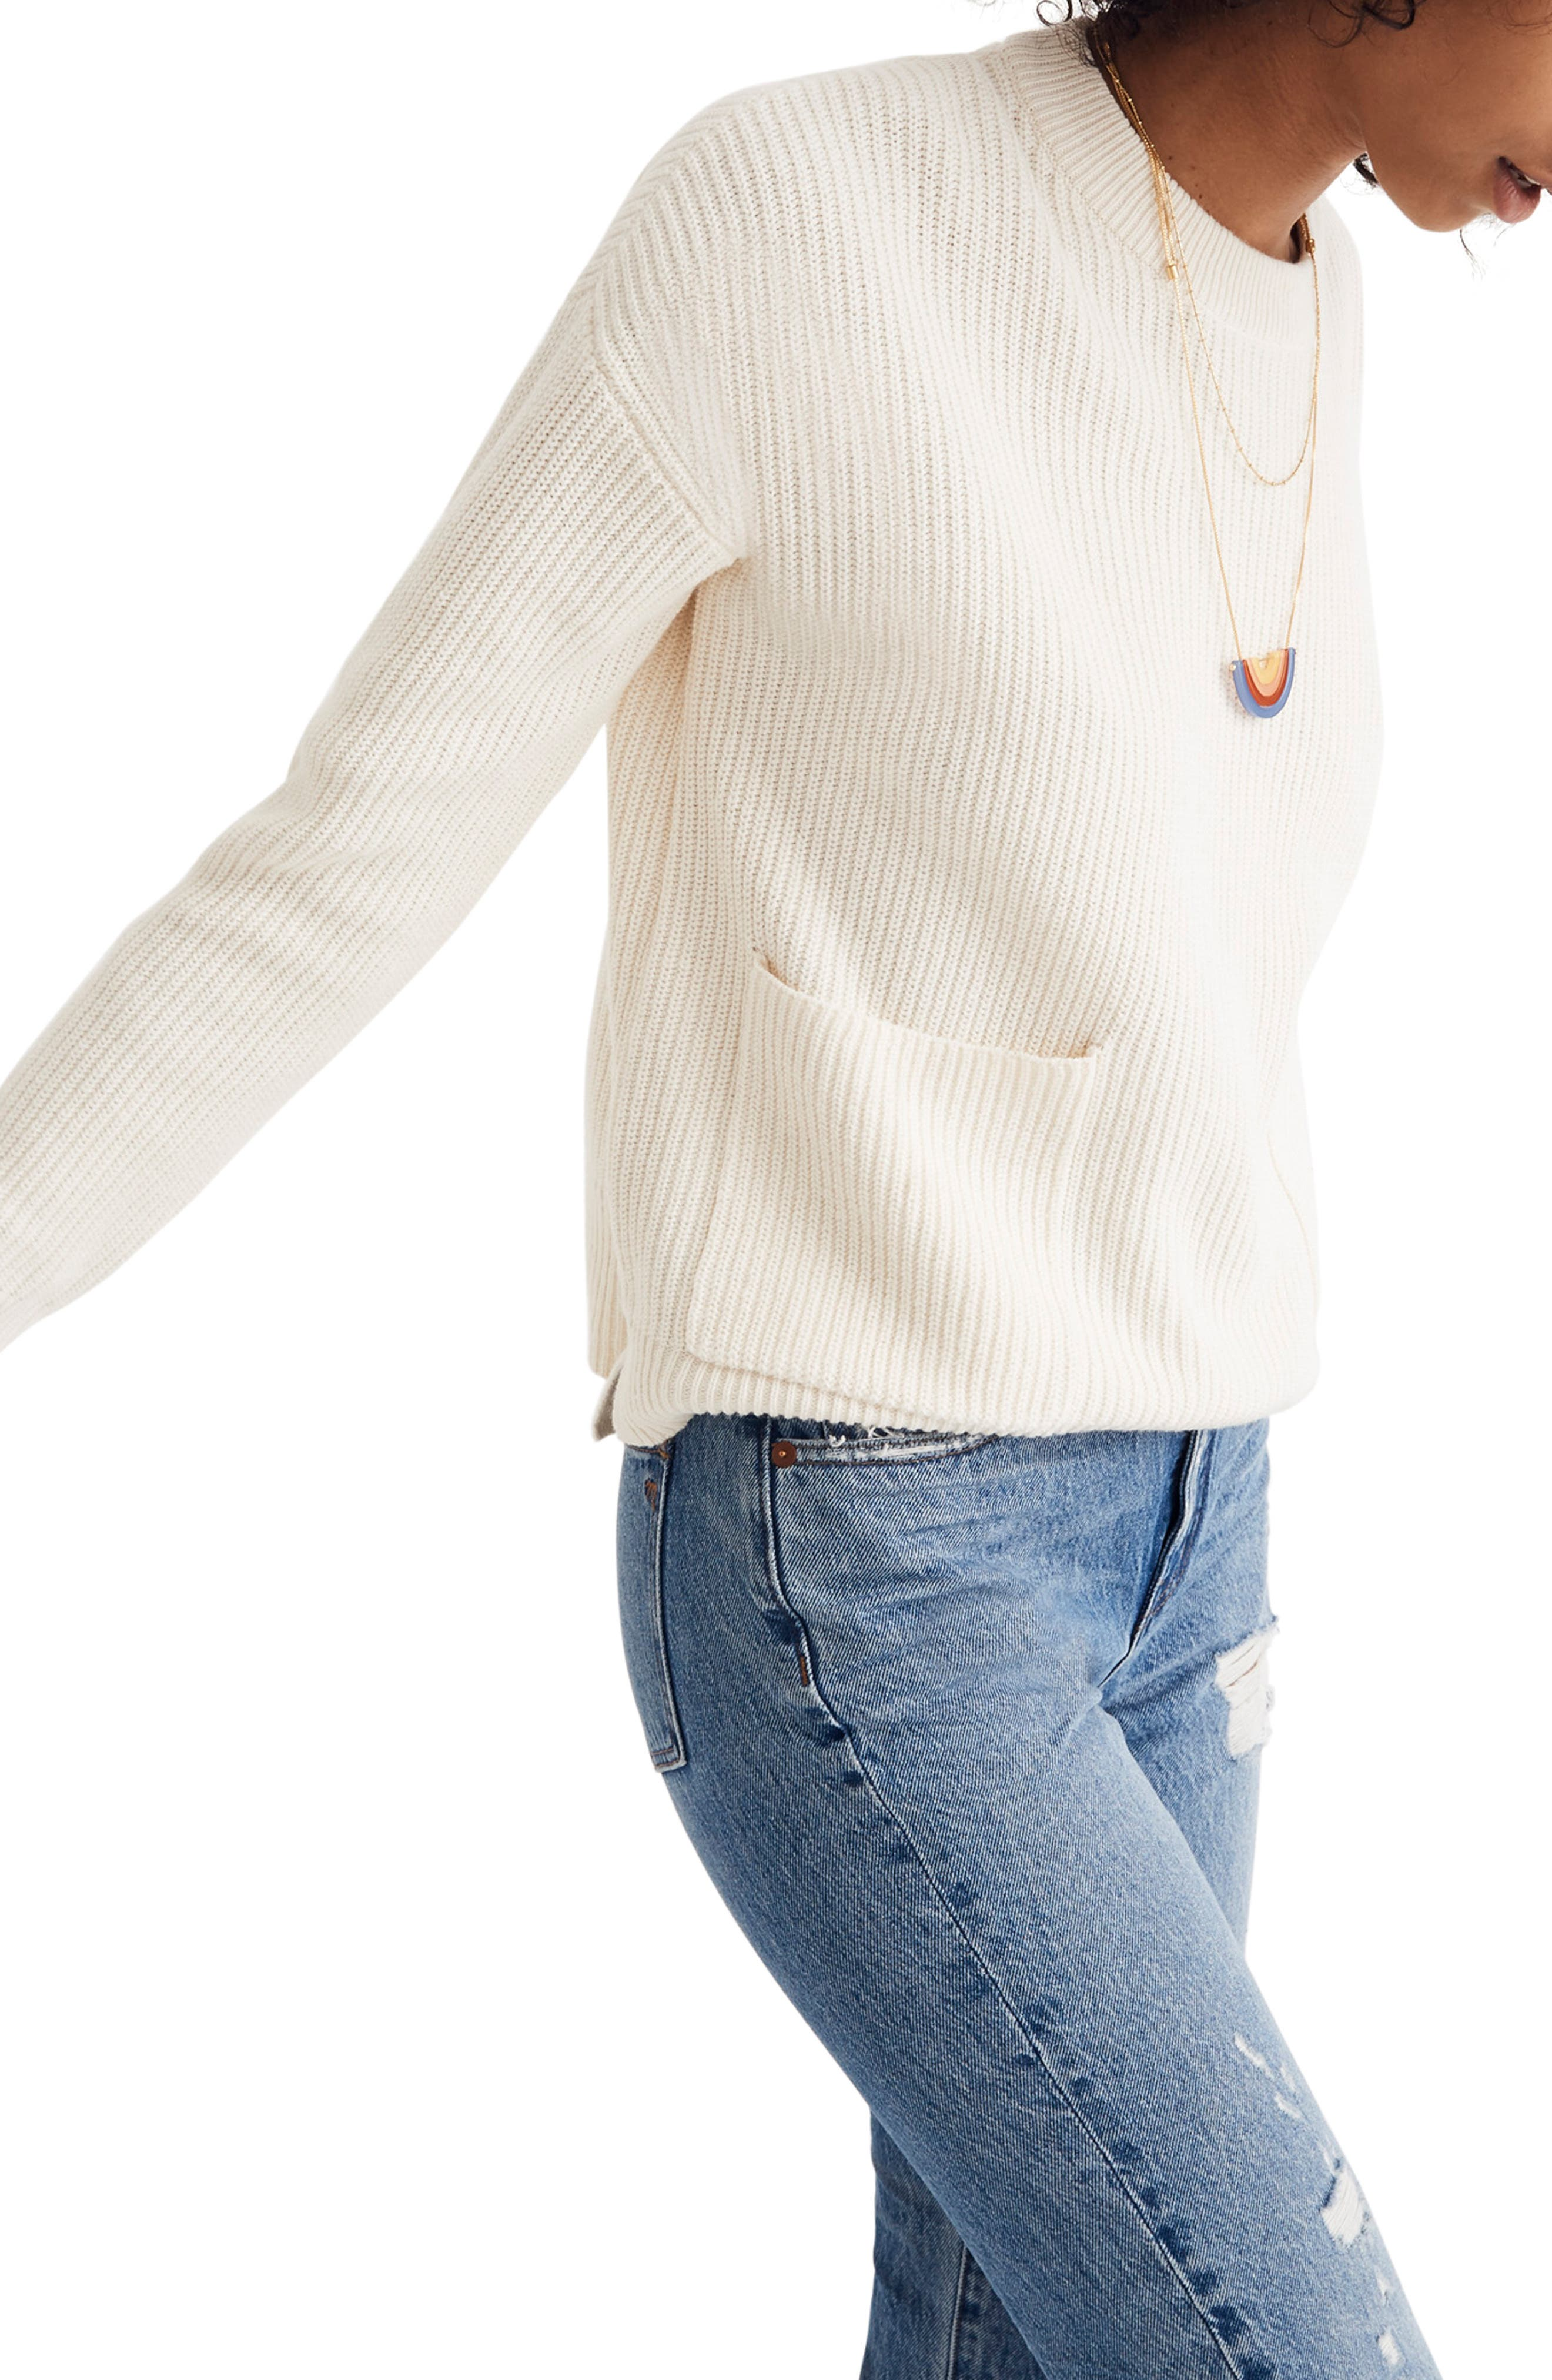 Patch Pocket Pullover Sweater,                             Alternate thumbnail 4, color,                             BRIGHT IVORY